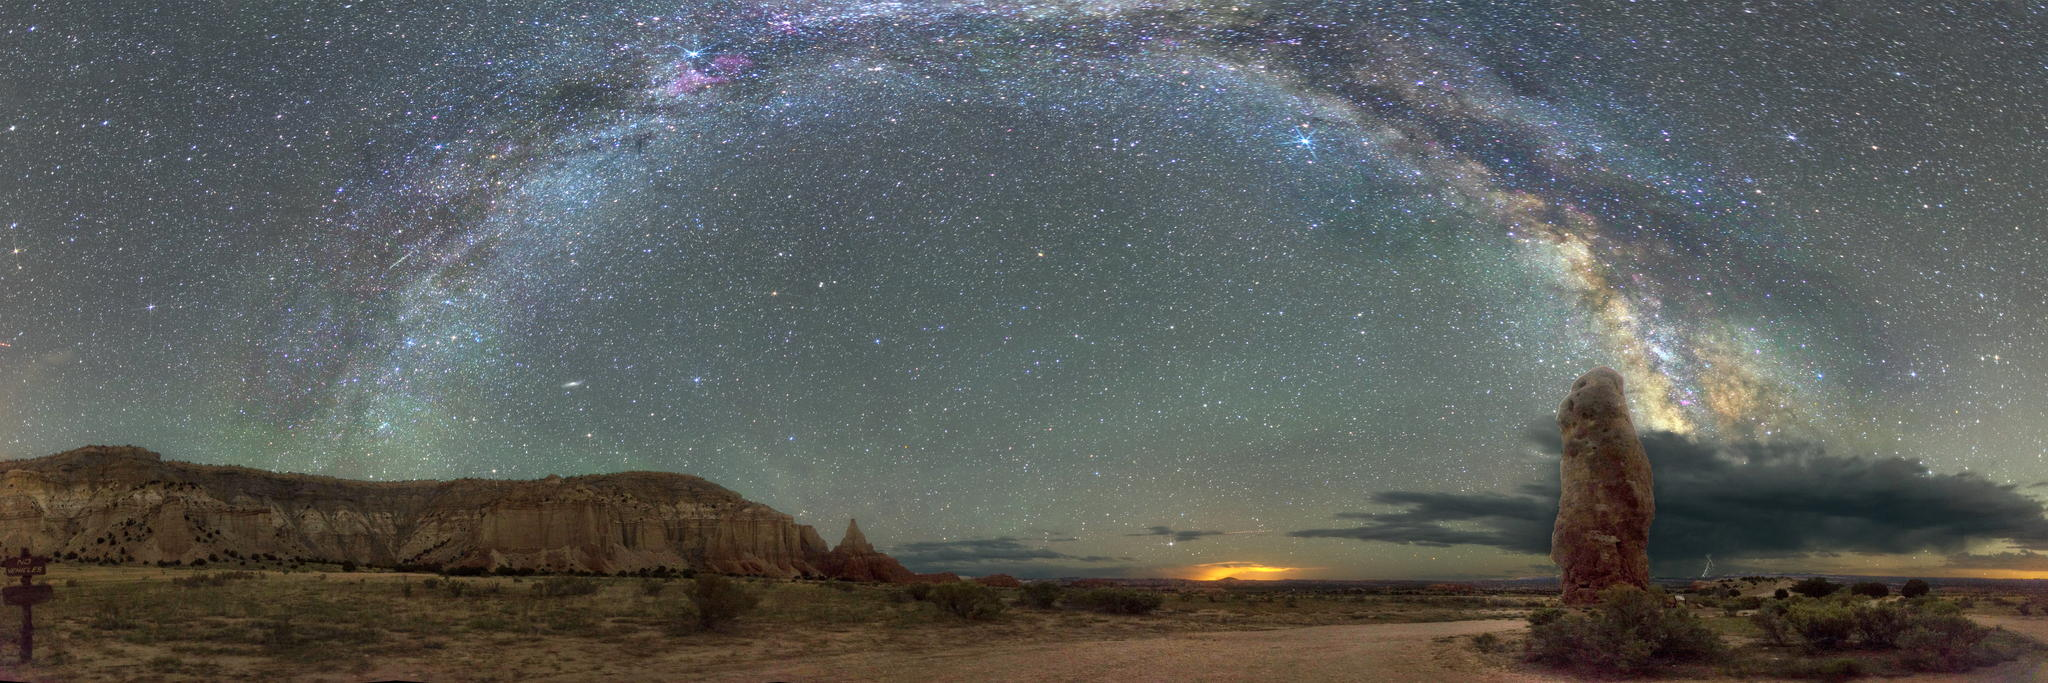 Milky way from Yellowstone Park-19